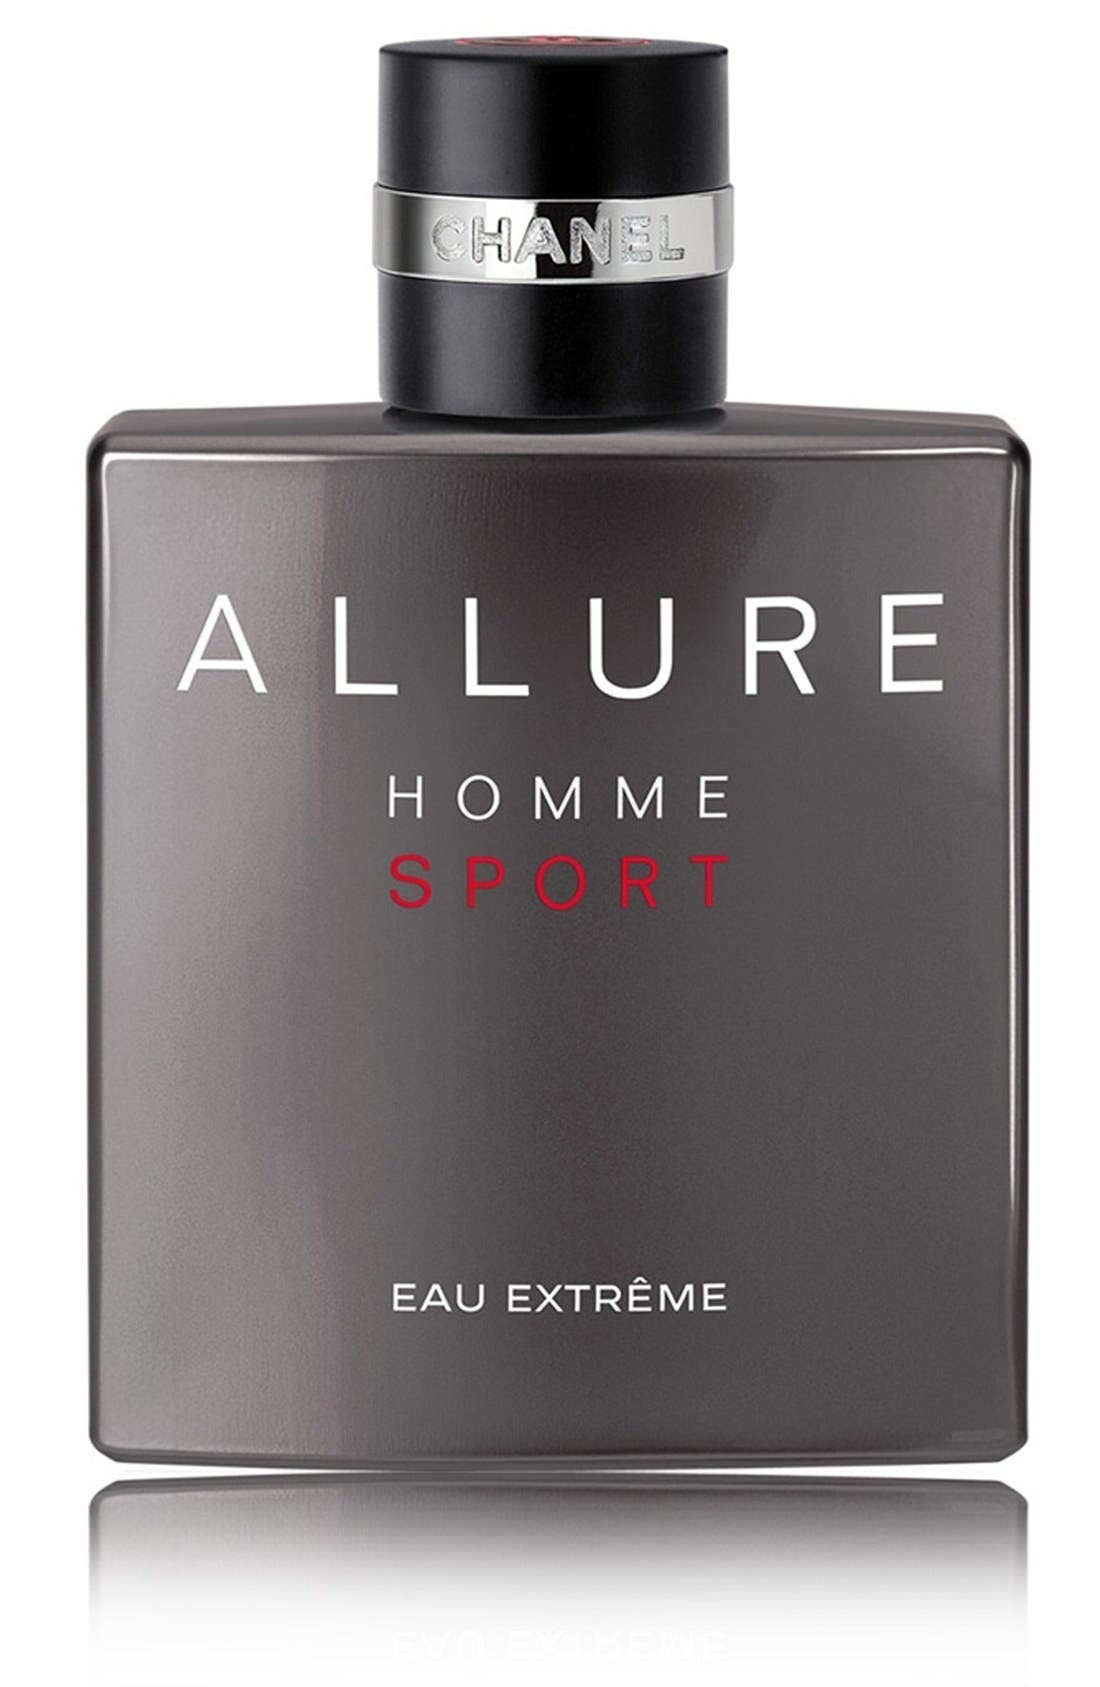 CHANEL, ALLURE HOMME SPORT EAU EXTREME Eau de Parfum, Alternate thumbnail 4, color, NOL COLOR